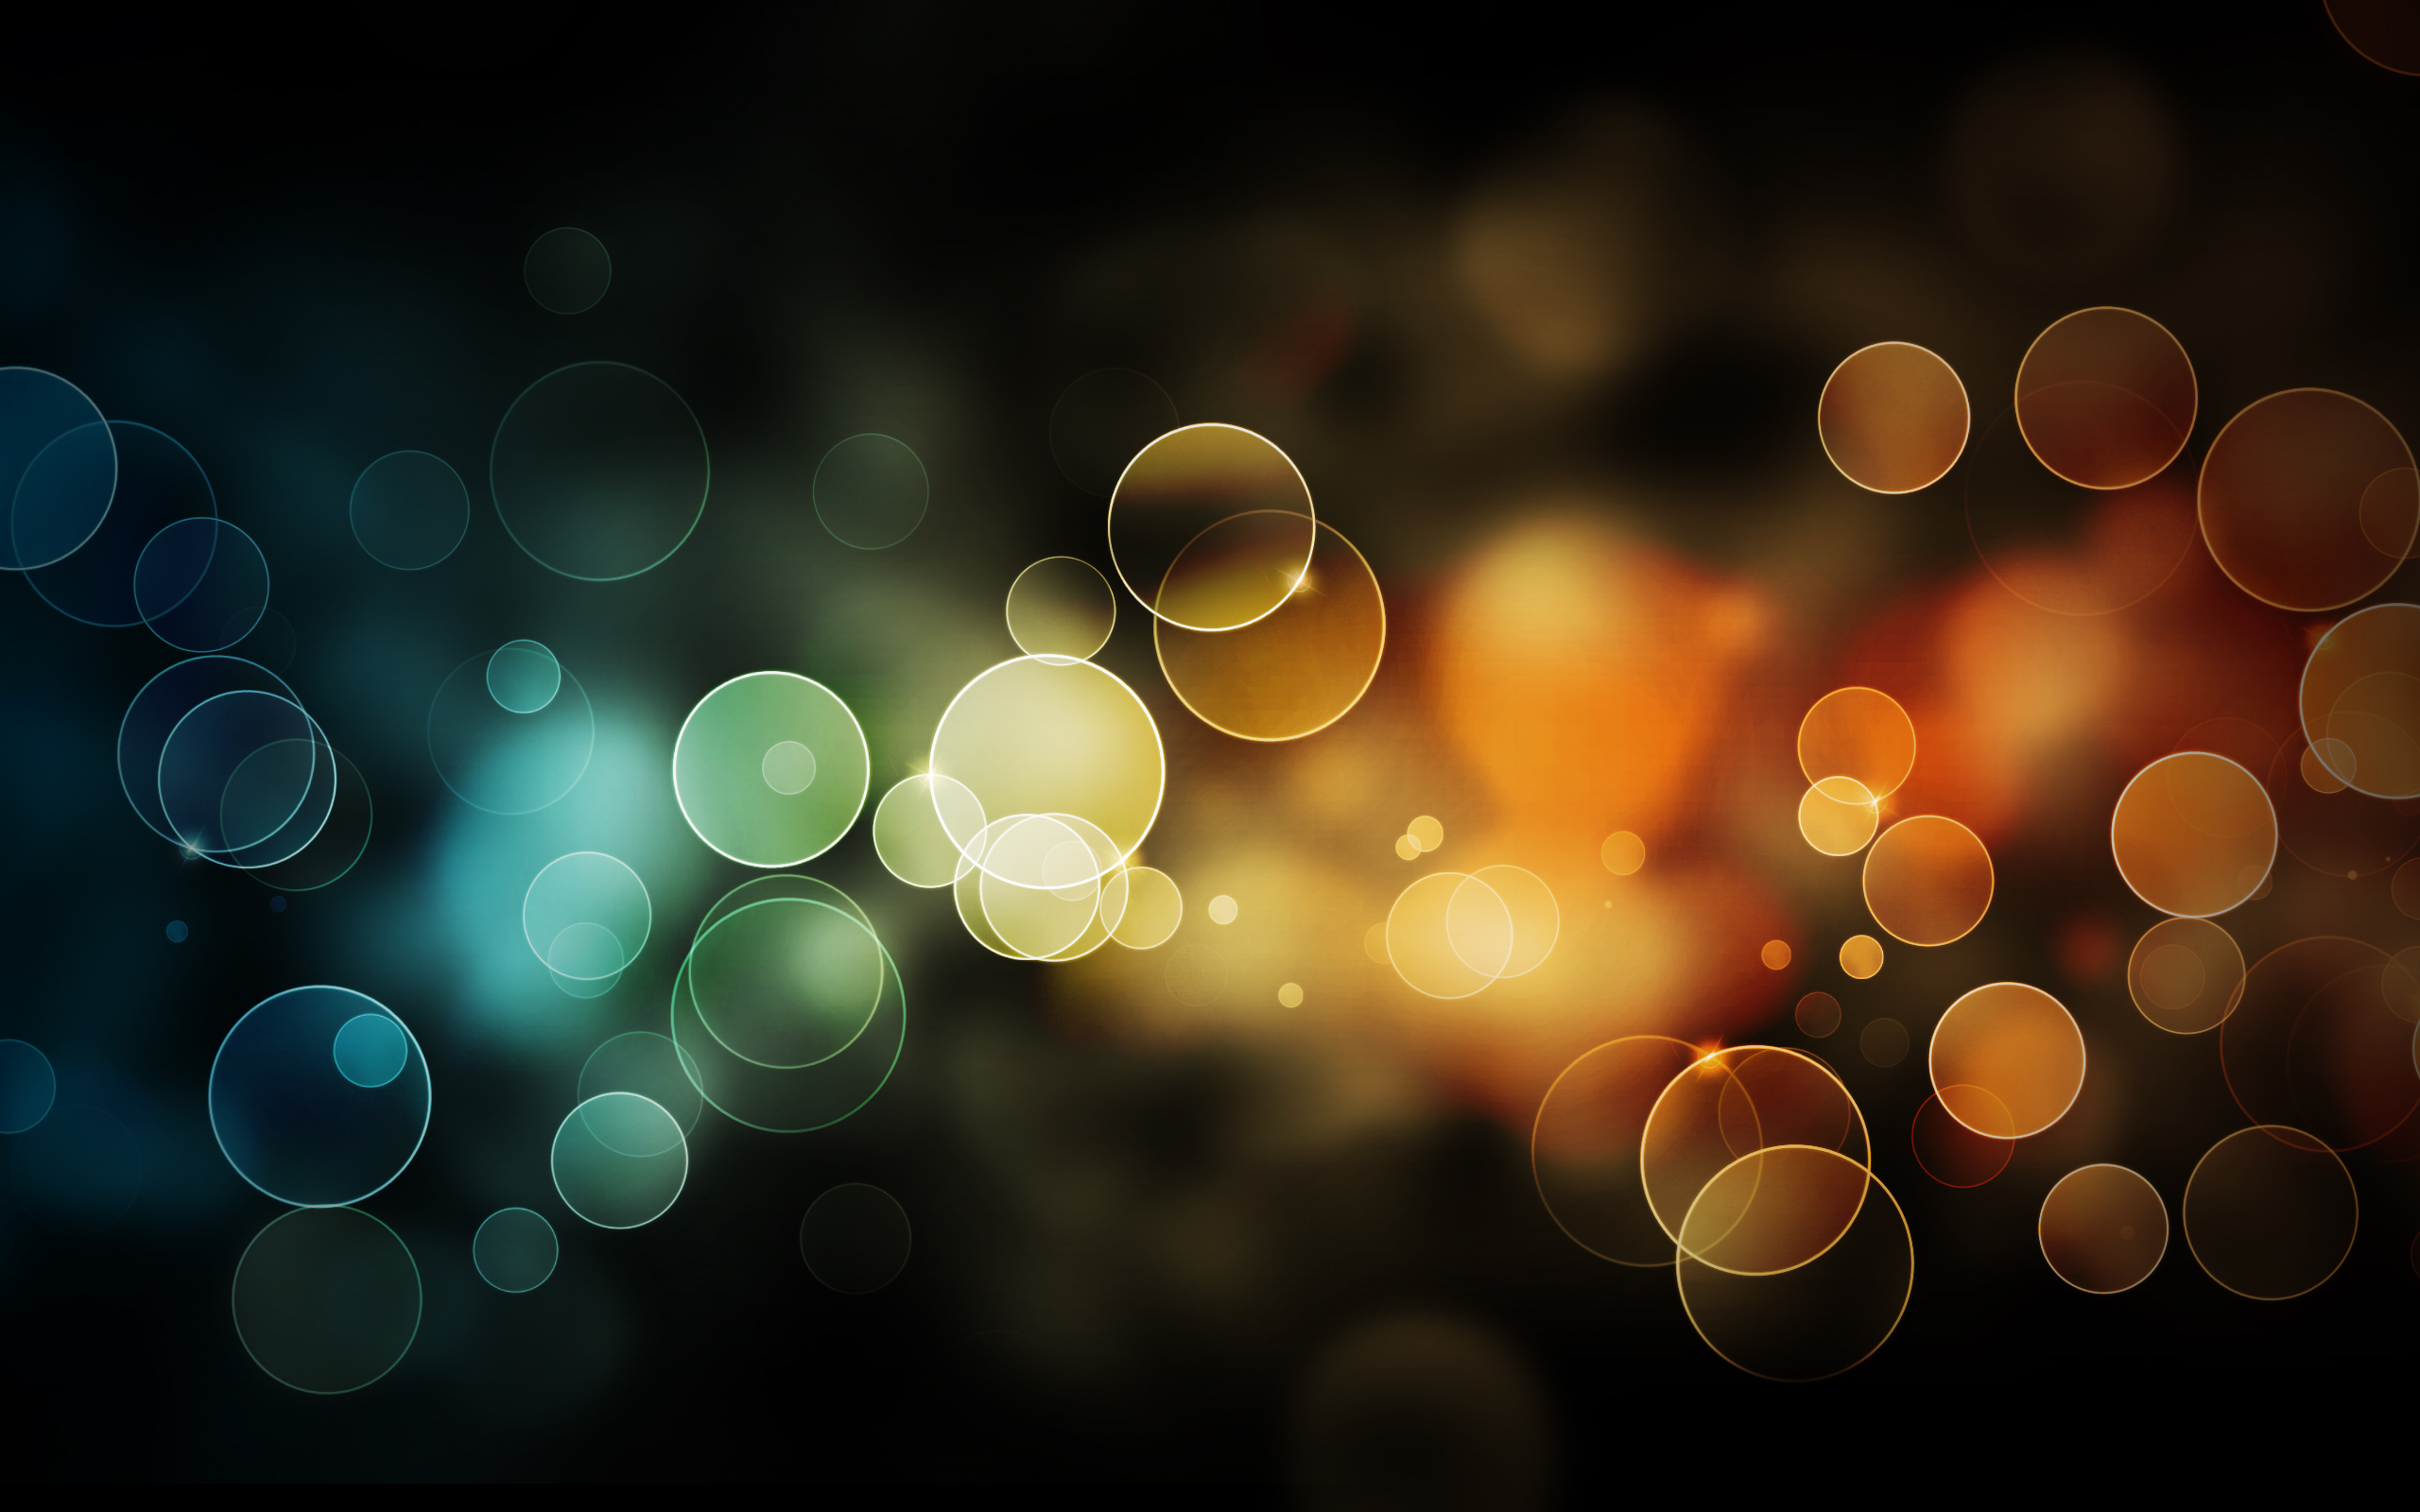 all hd wallpaper bokeh - photo #23